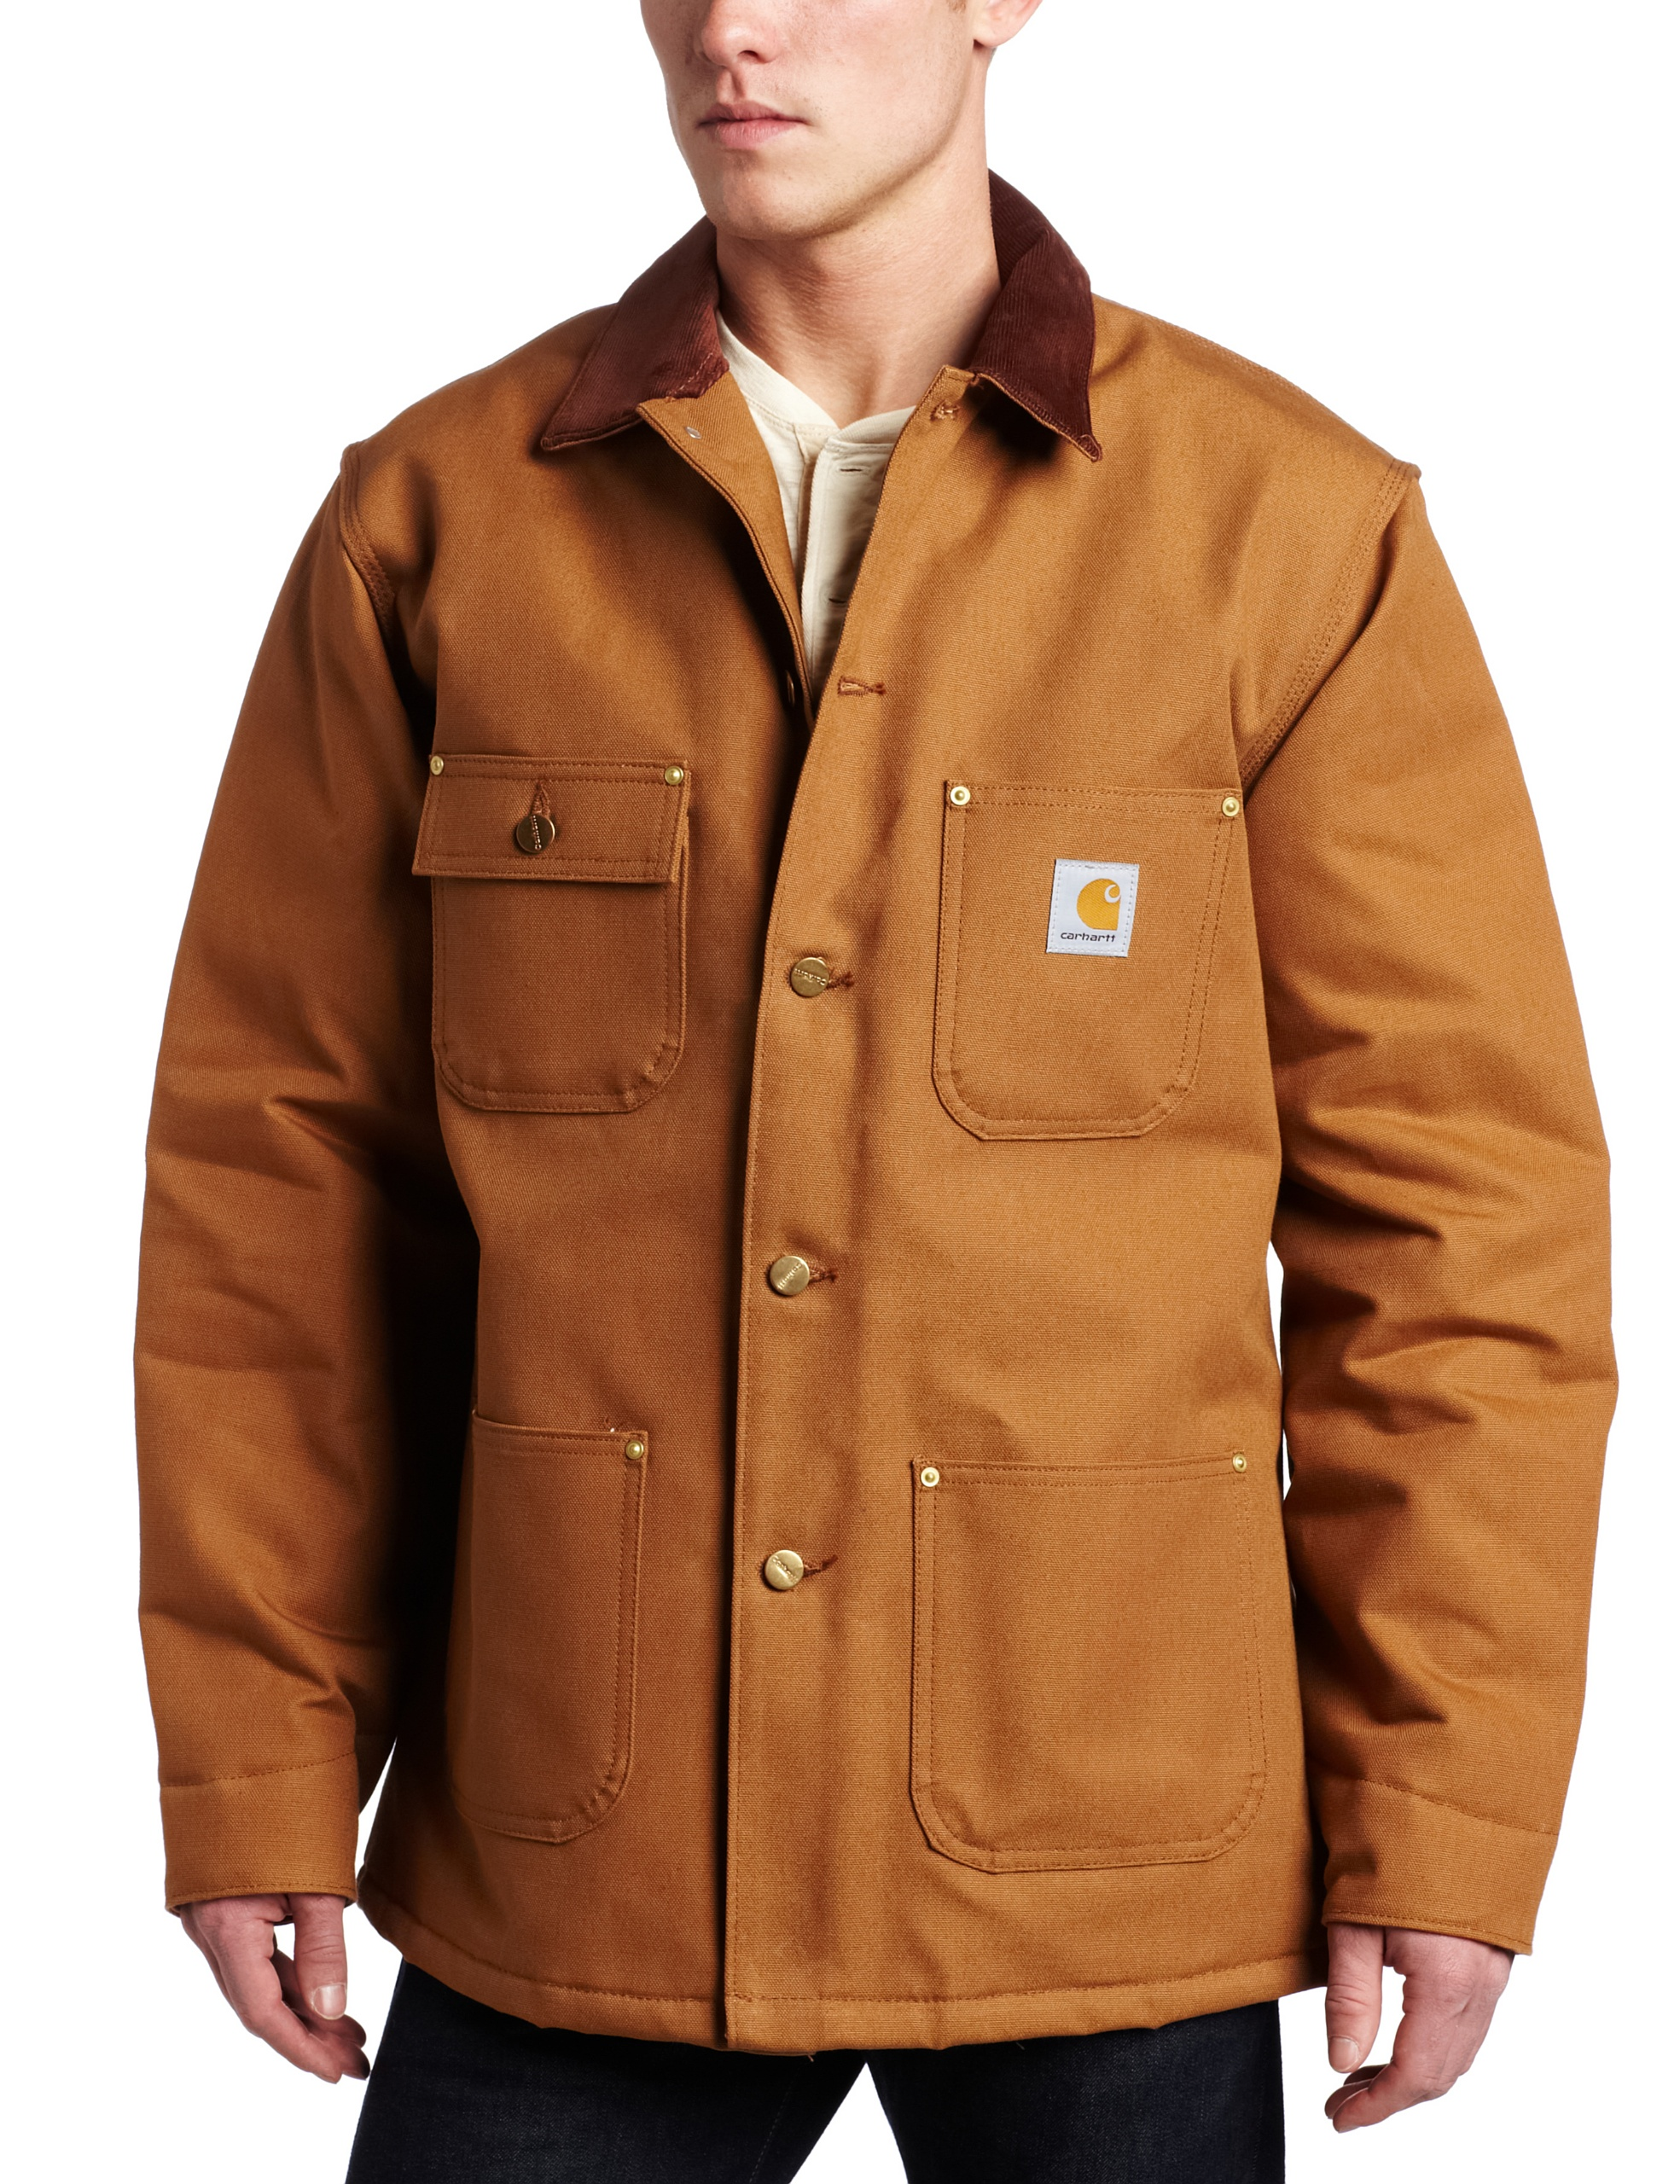 Carhartt Men's Duck Chore Coat Blanket Lined C001,Brown,Large